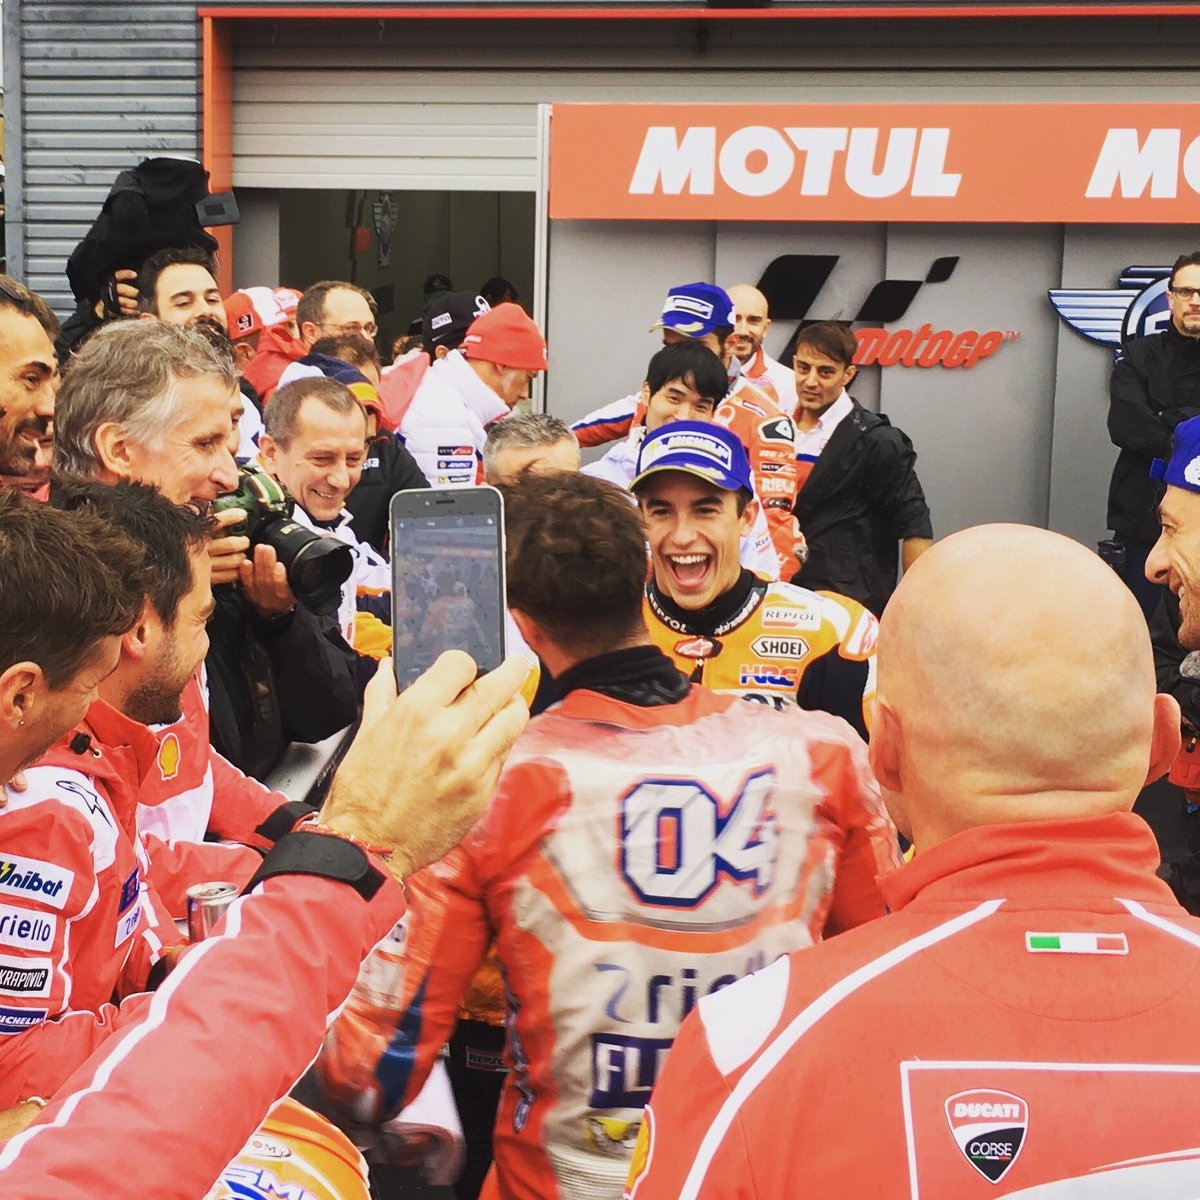 Amazing race in Motegi @marcmarquez93 &amp; @andreadovizioso !  This is racing, this is MotoGP!  #JapaneseGP <br>http://pic.twitter.com/ctGYrtfS9T